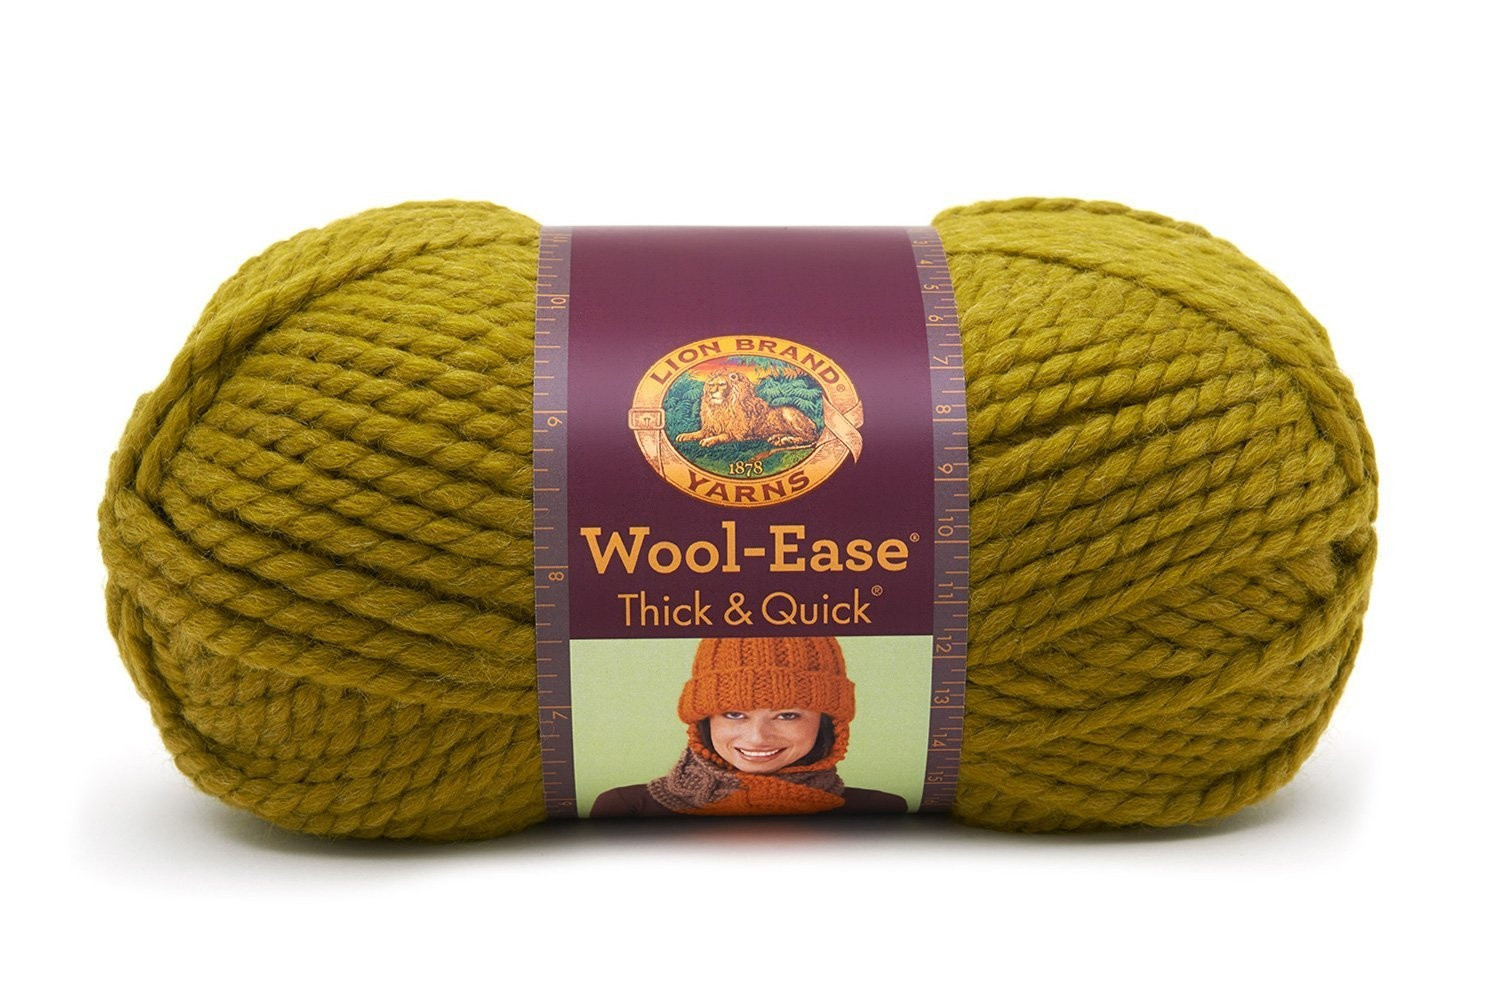 Lion Brand Wool Ease Best Of Lion Brand Yarn 640 136f Wool Ease Thick and Quick Yarn Of Lion Brand Wool Ease New Lion Brand Yarn Wool Ease Yarn Best Price